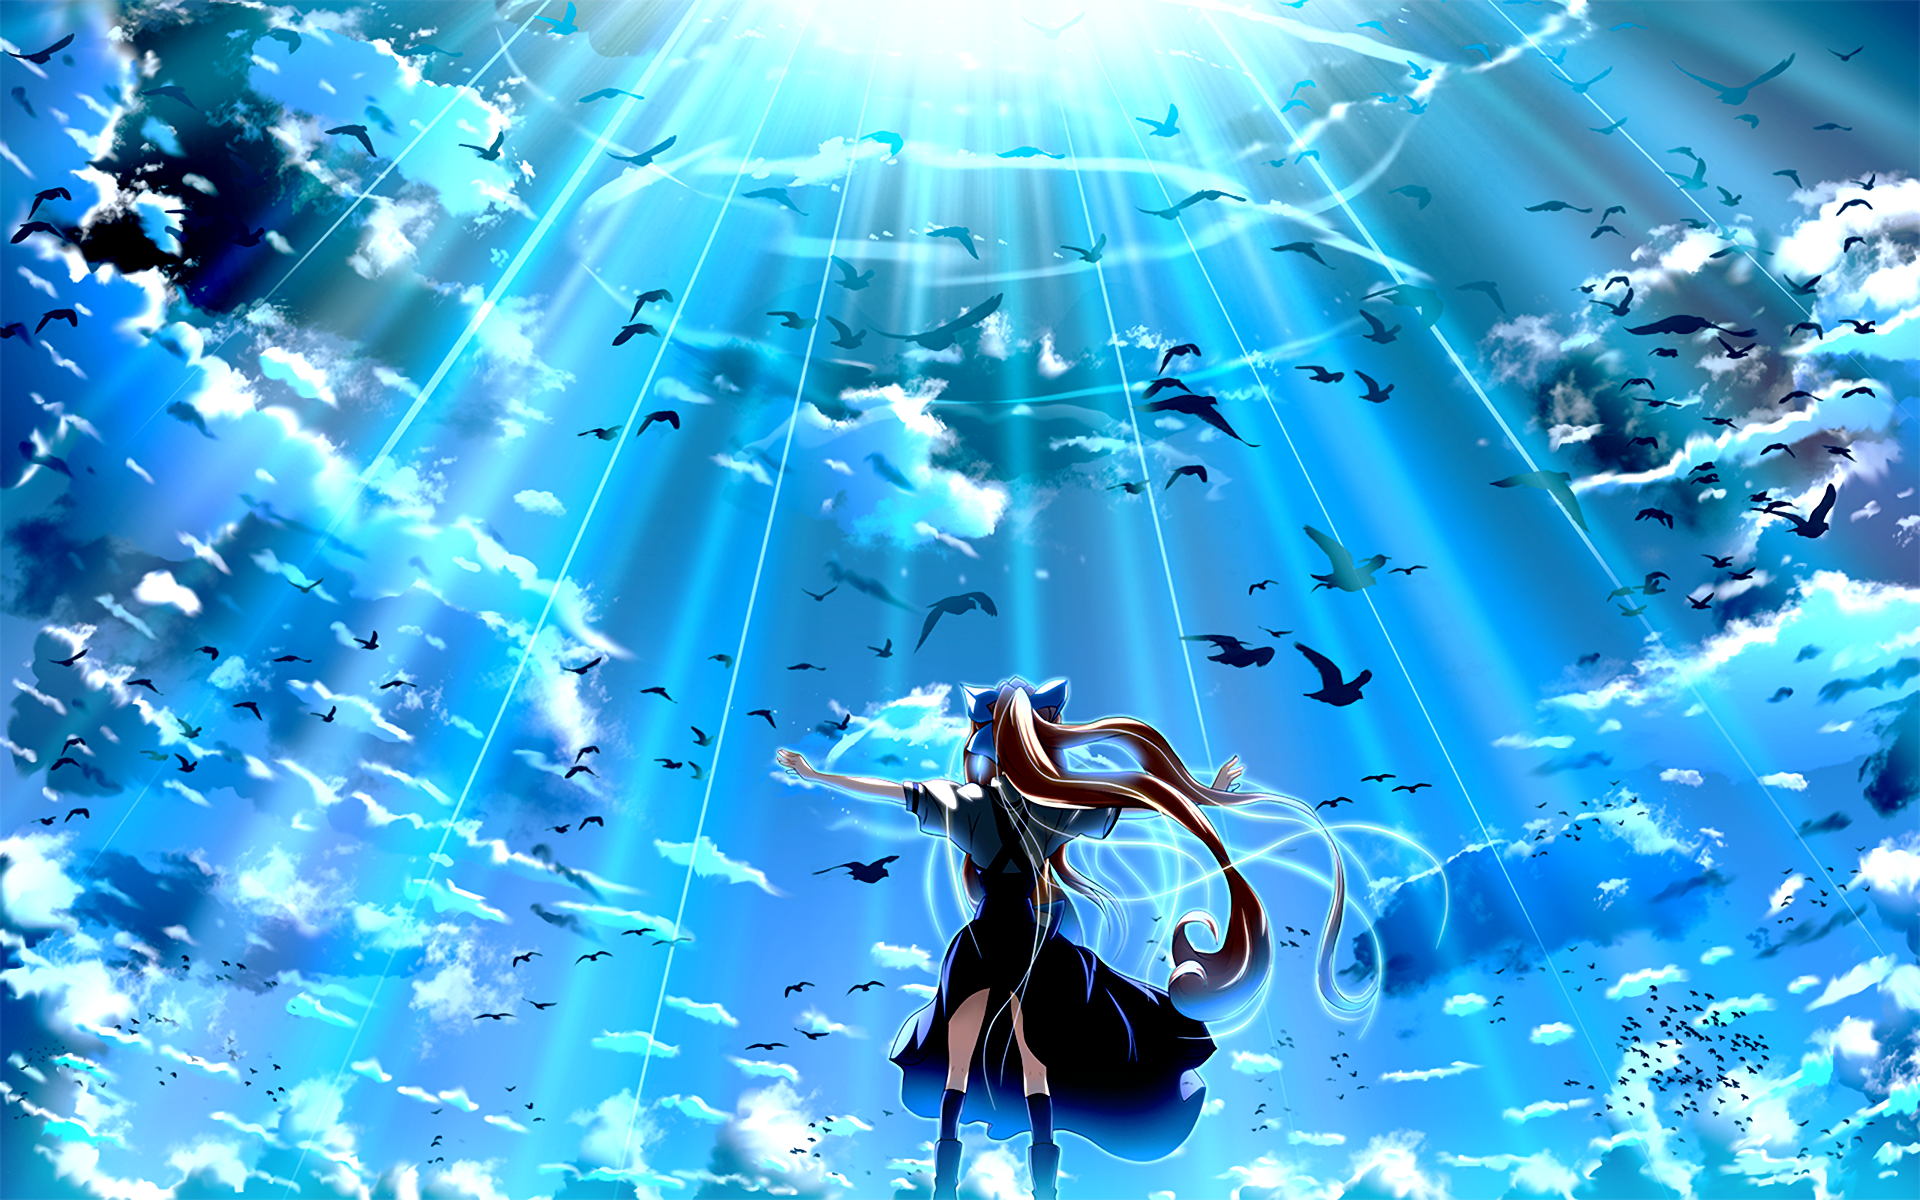 Air hd wallpaper background image 1920x1200 id - Fantasy wallpaper anime ...